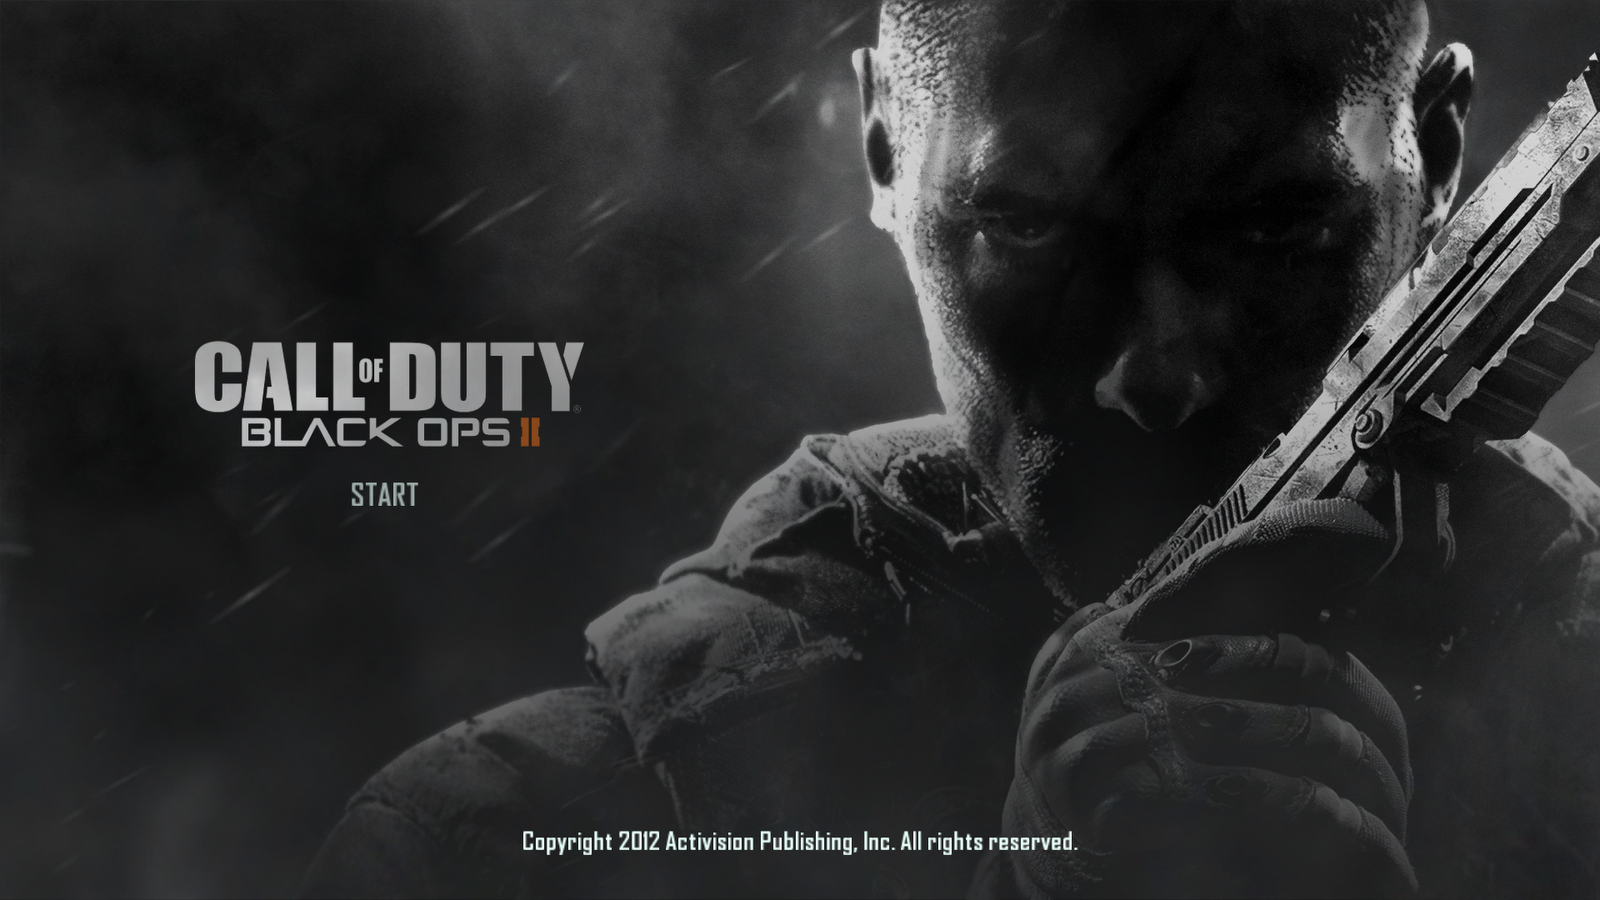 Call Of Duty Black Ops 2 Wallpapers Hd